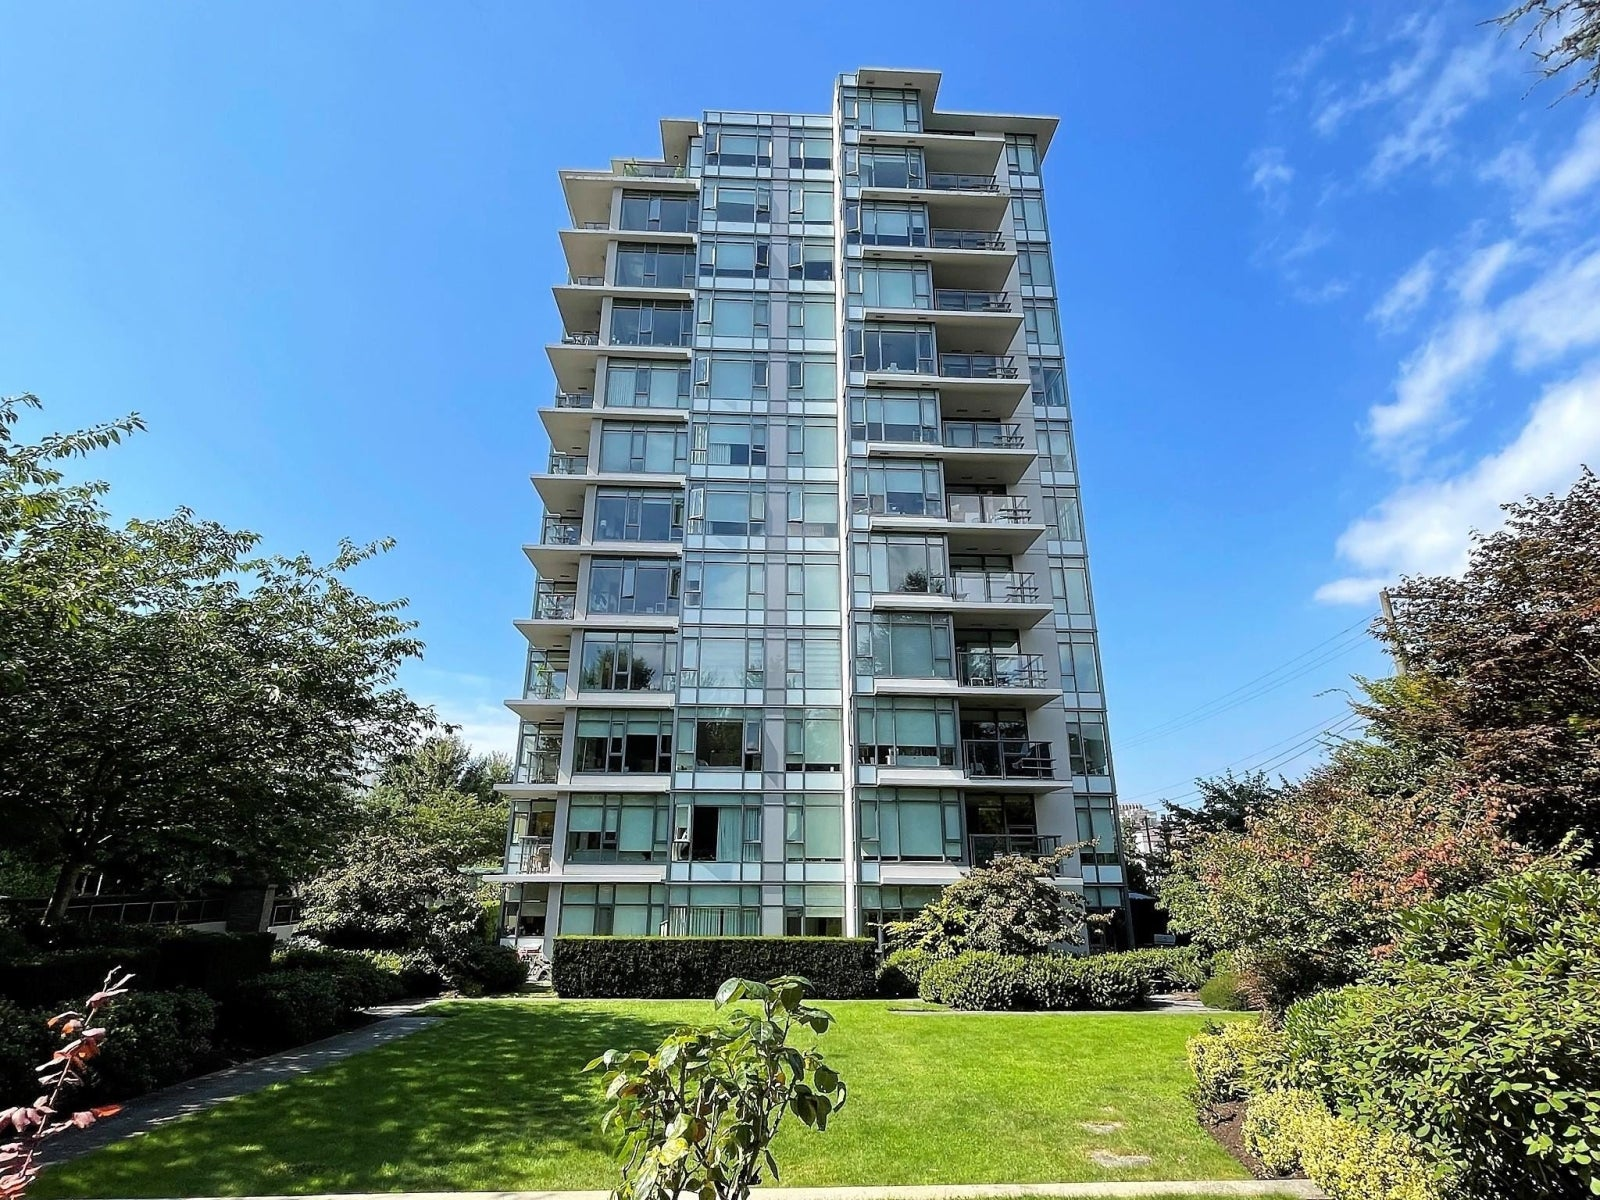 803 1333 W 11TH AVENUE - Fairview VW Apartment/Condo for sale, 2 Bedrooms (R2616288) #36